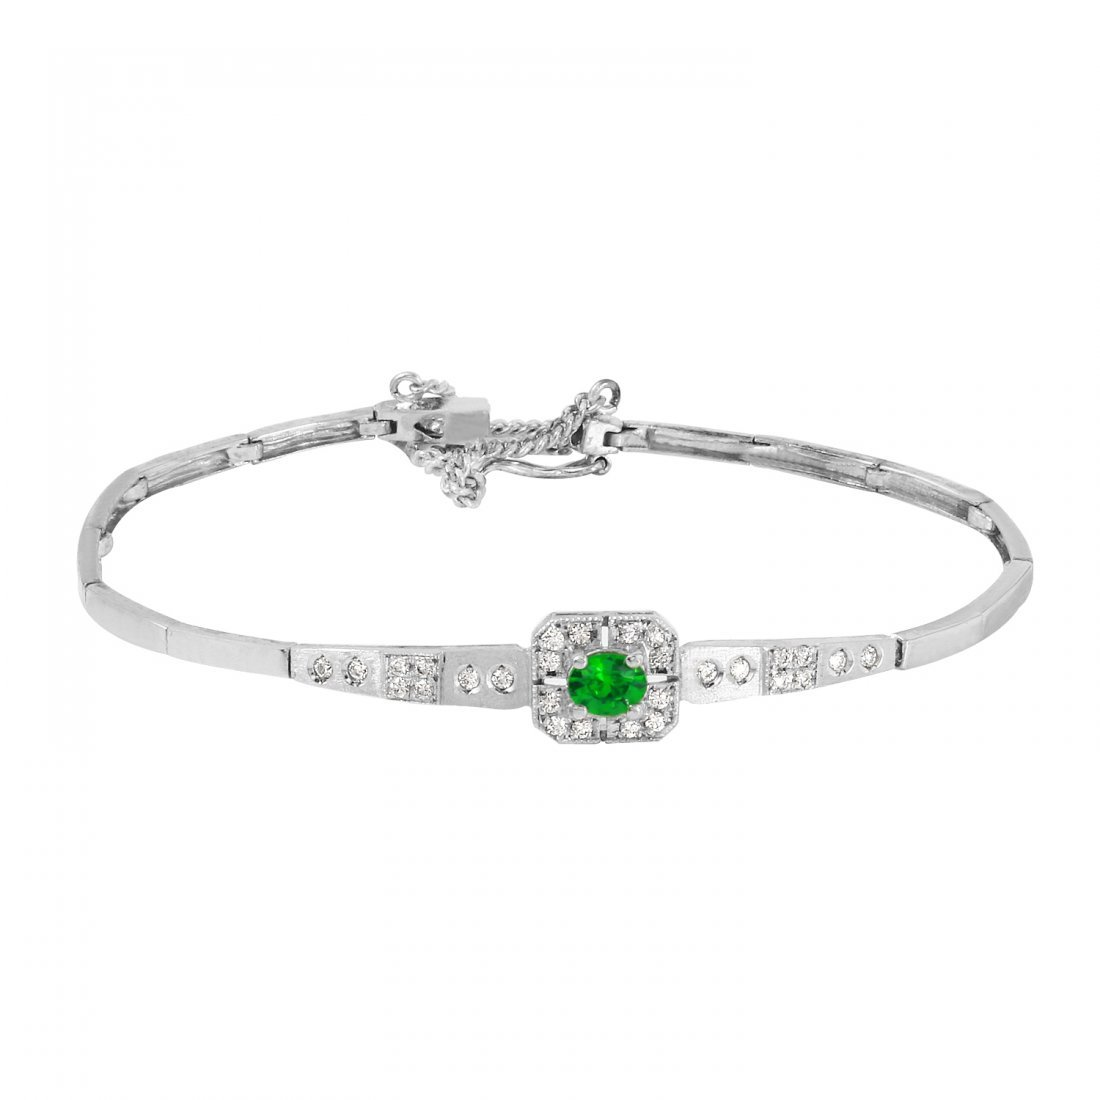 Ladies Created Emerald 14K White Gold Bracelet With